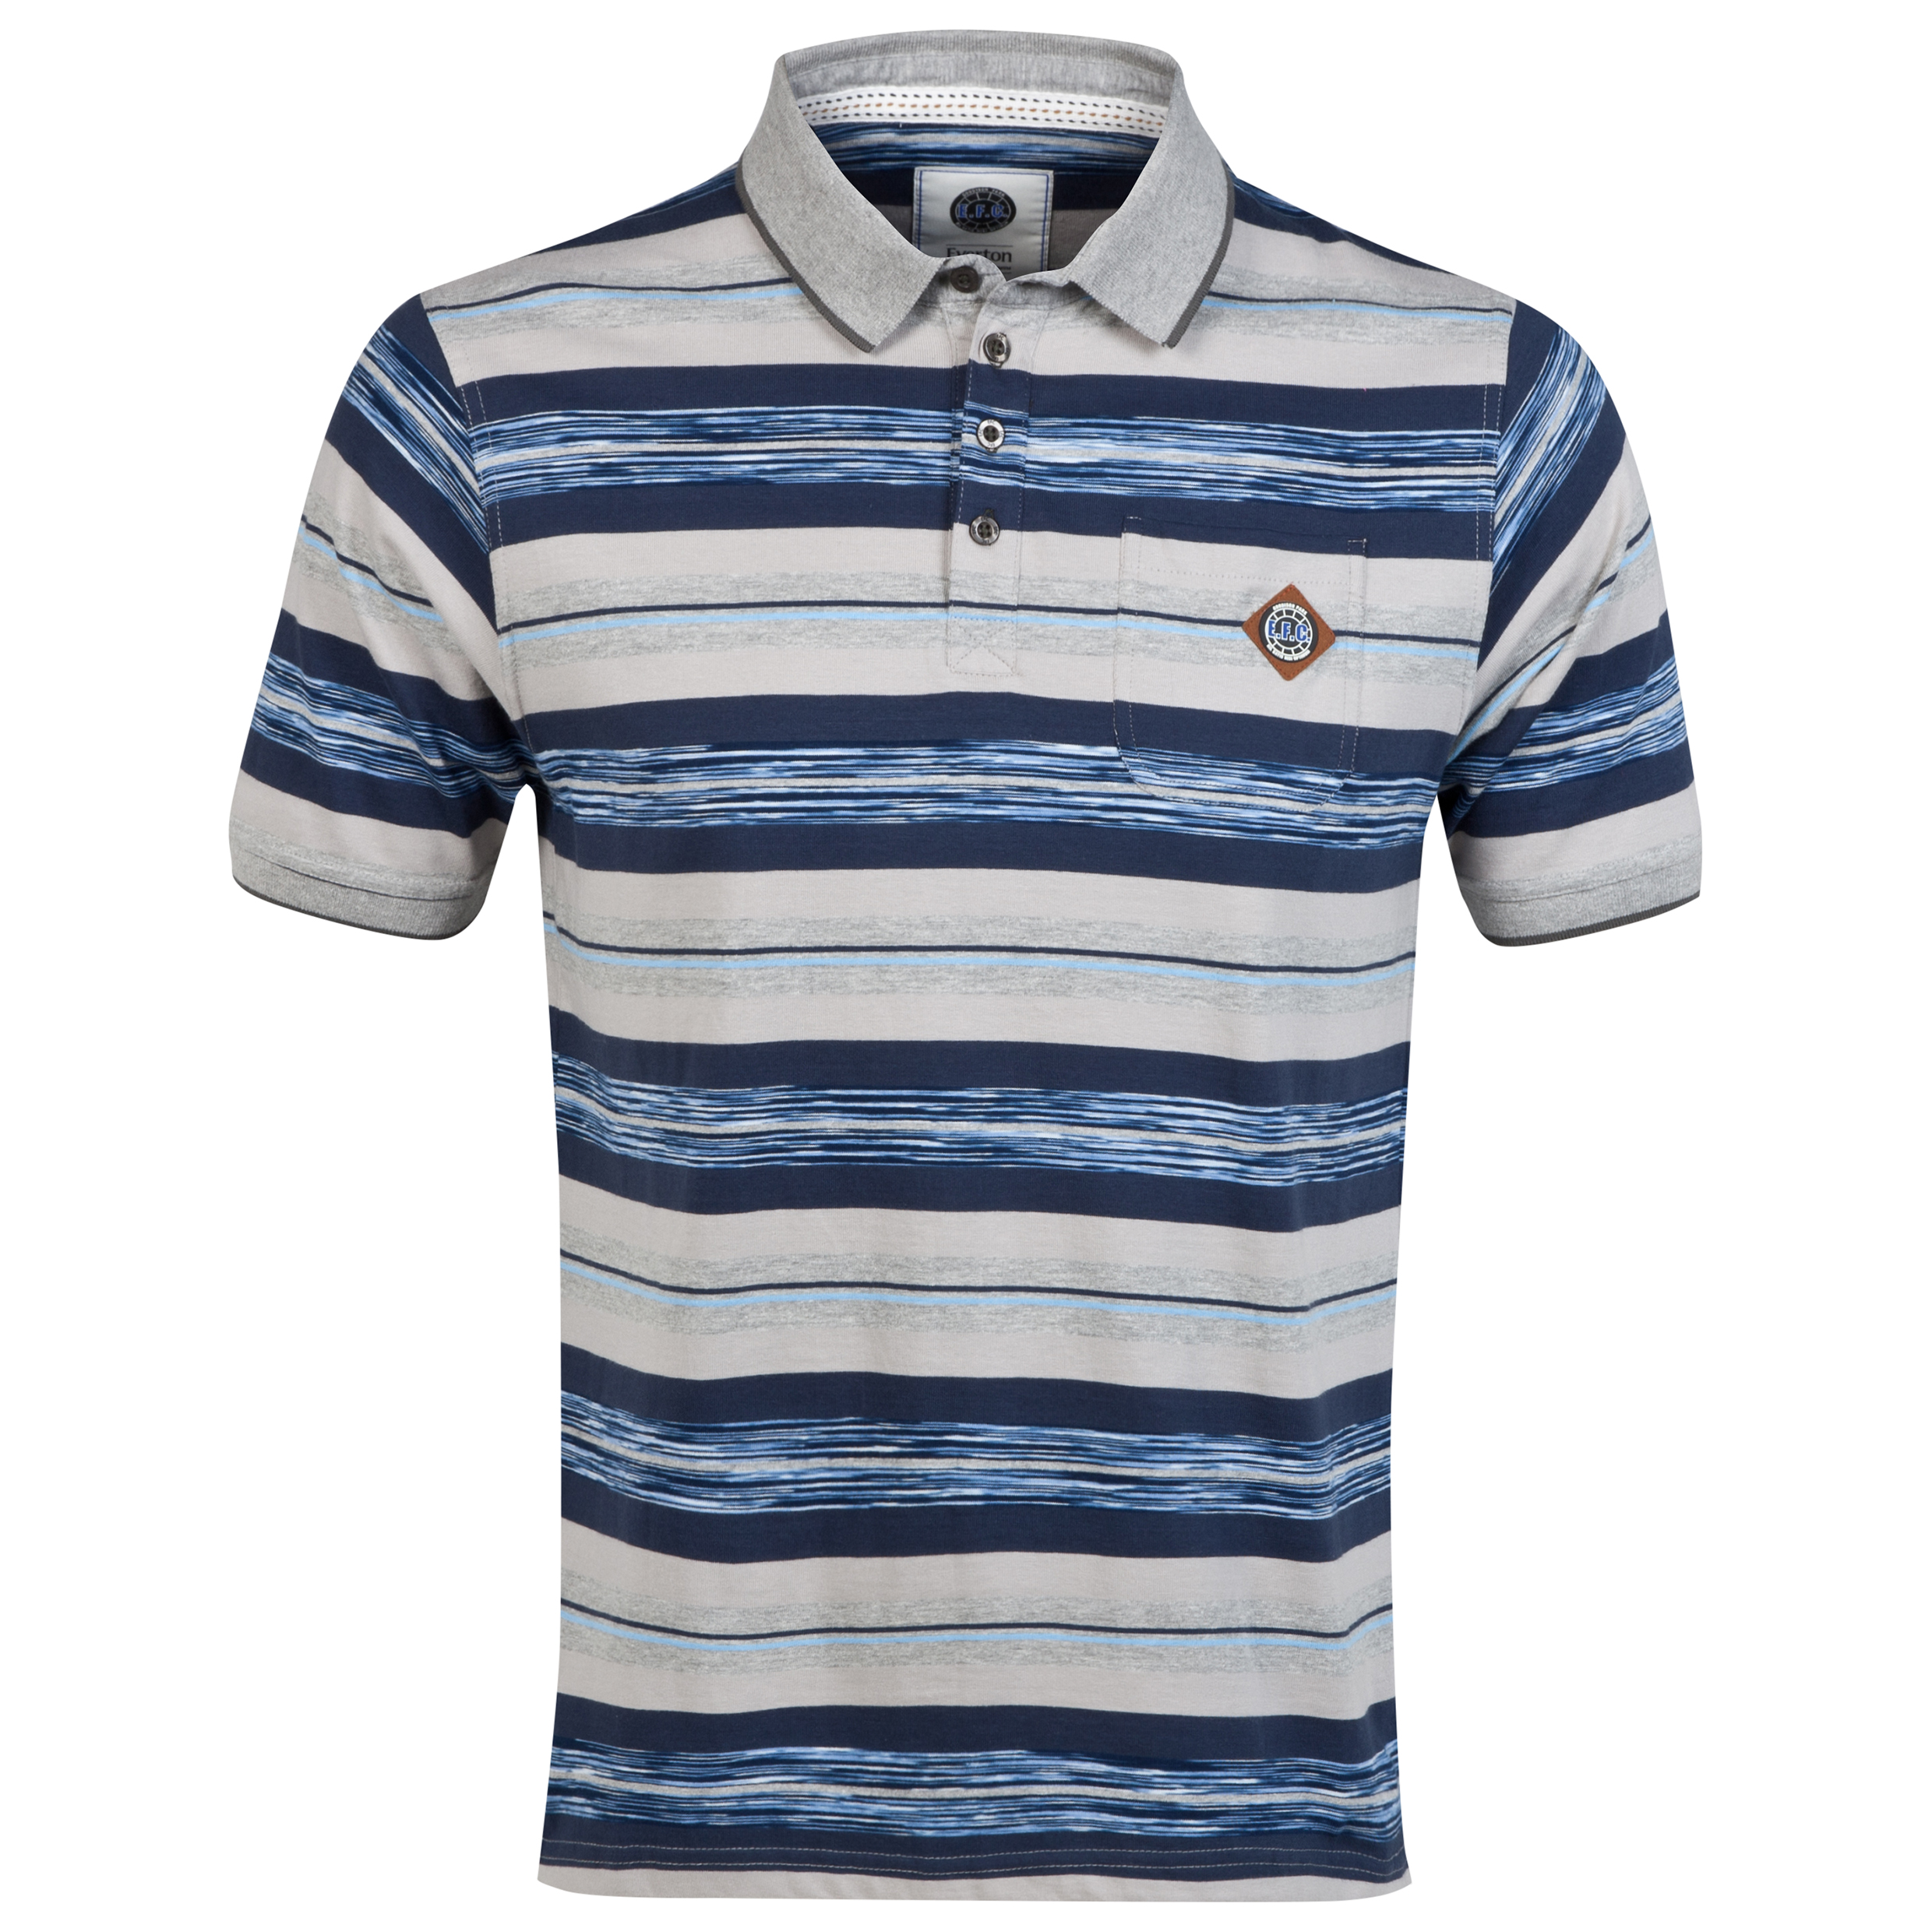 Everton Stripe Polo Shirt -Grey/Navy/Blue - Older Boys